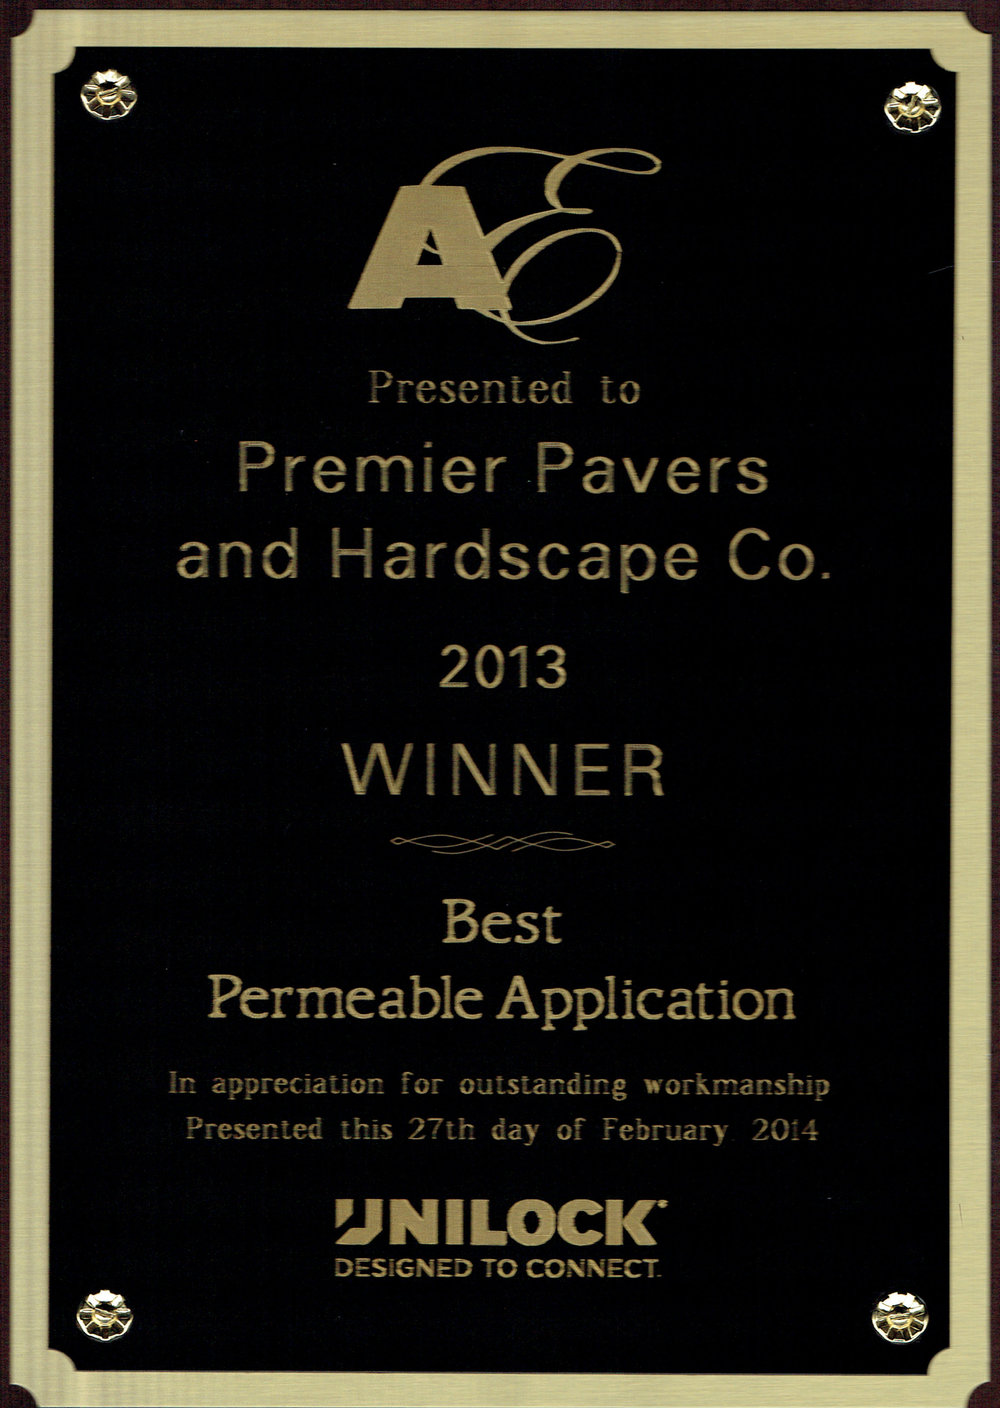 Eastern Massachusetts landscaping company with Unilock award for best permeable application.